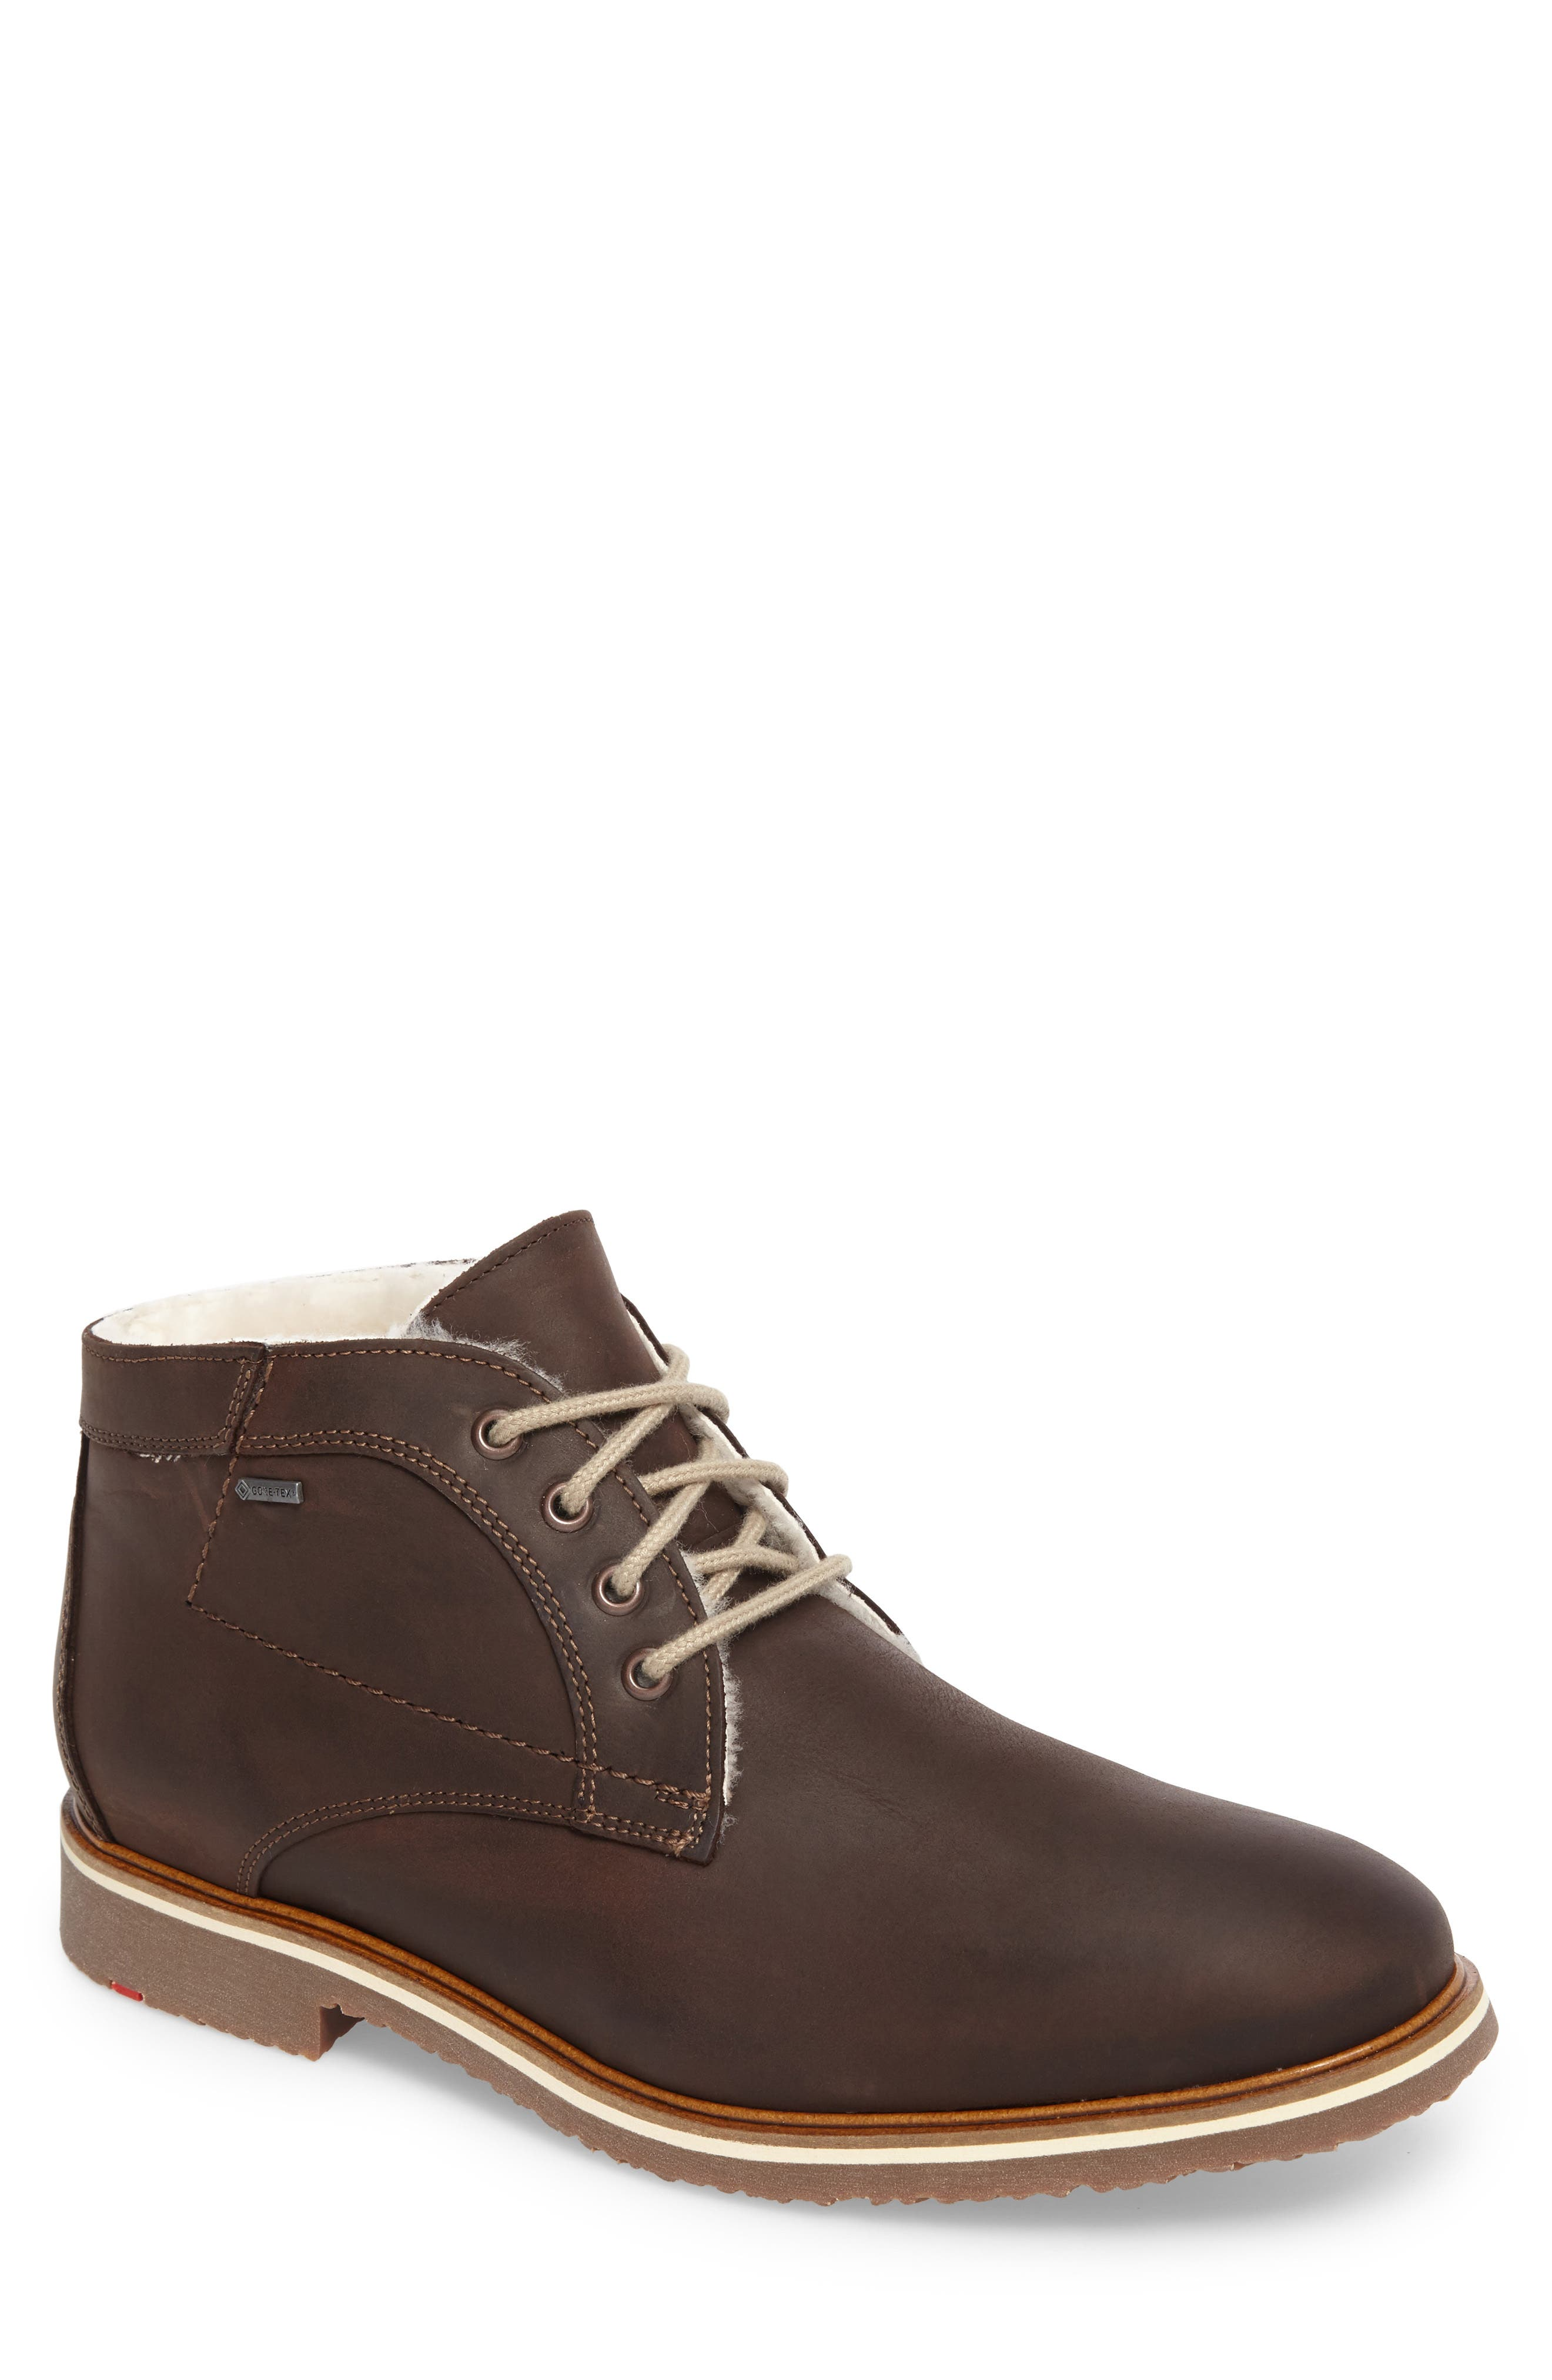 Varus Waterproof Shearlng Lined Chukka Boot,                         Main,                         color, EBONY LEATHER